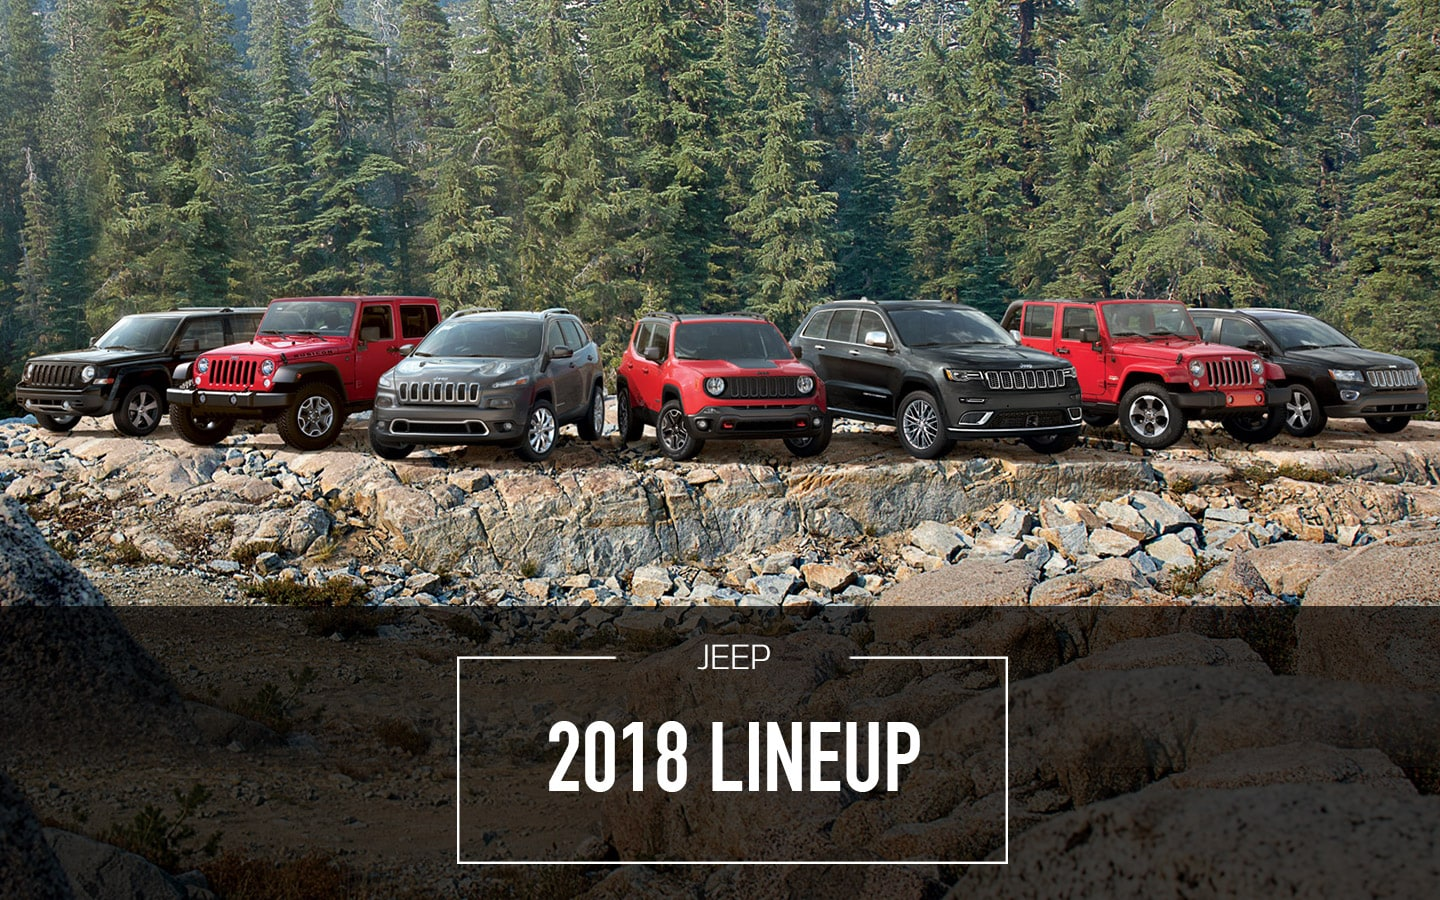 2018 Jeep Lineup At Bert Ogden